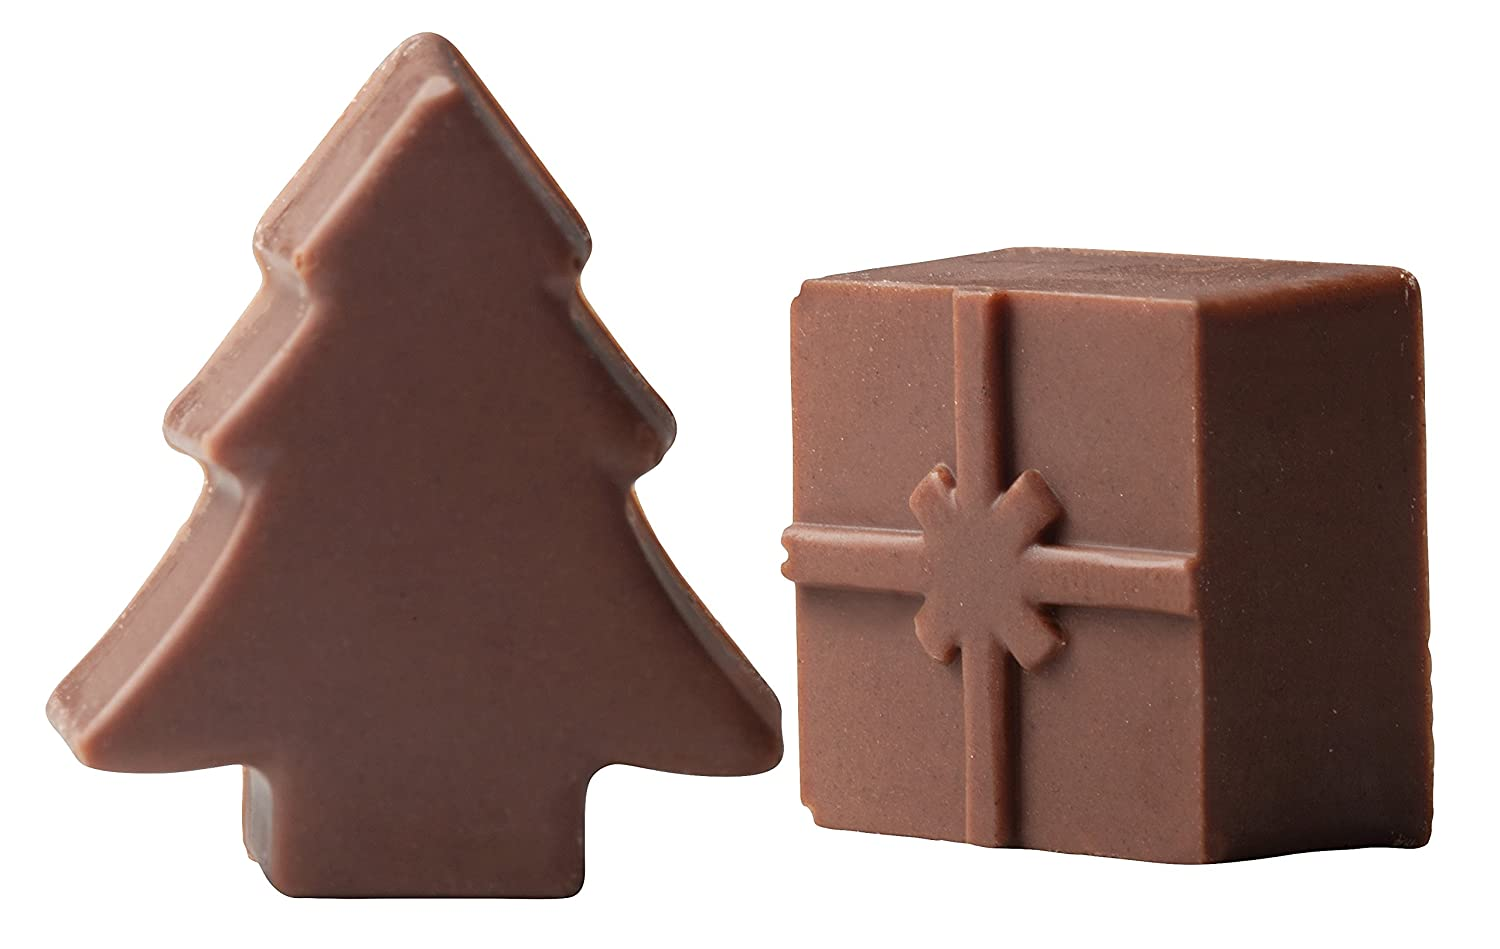 43829 Anderson/'s Baking Triple Chocolate Bar Mold Non-Stick European-Grade Silicone Mrs Makes 3 Standard-Sized Chocolate Bars Harold Import Co